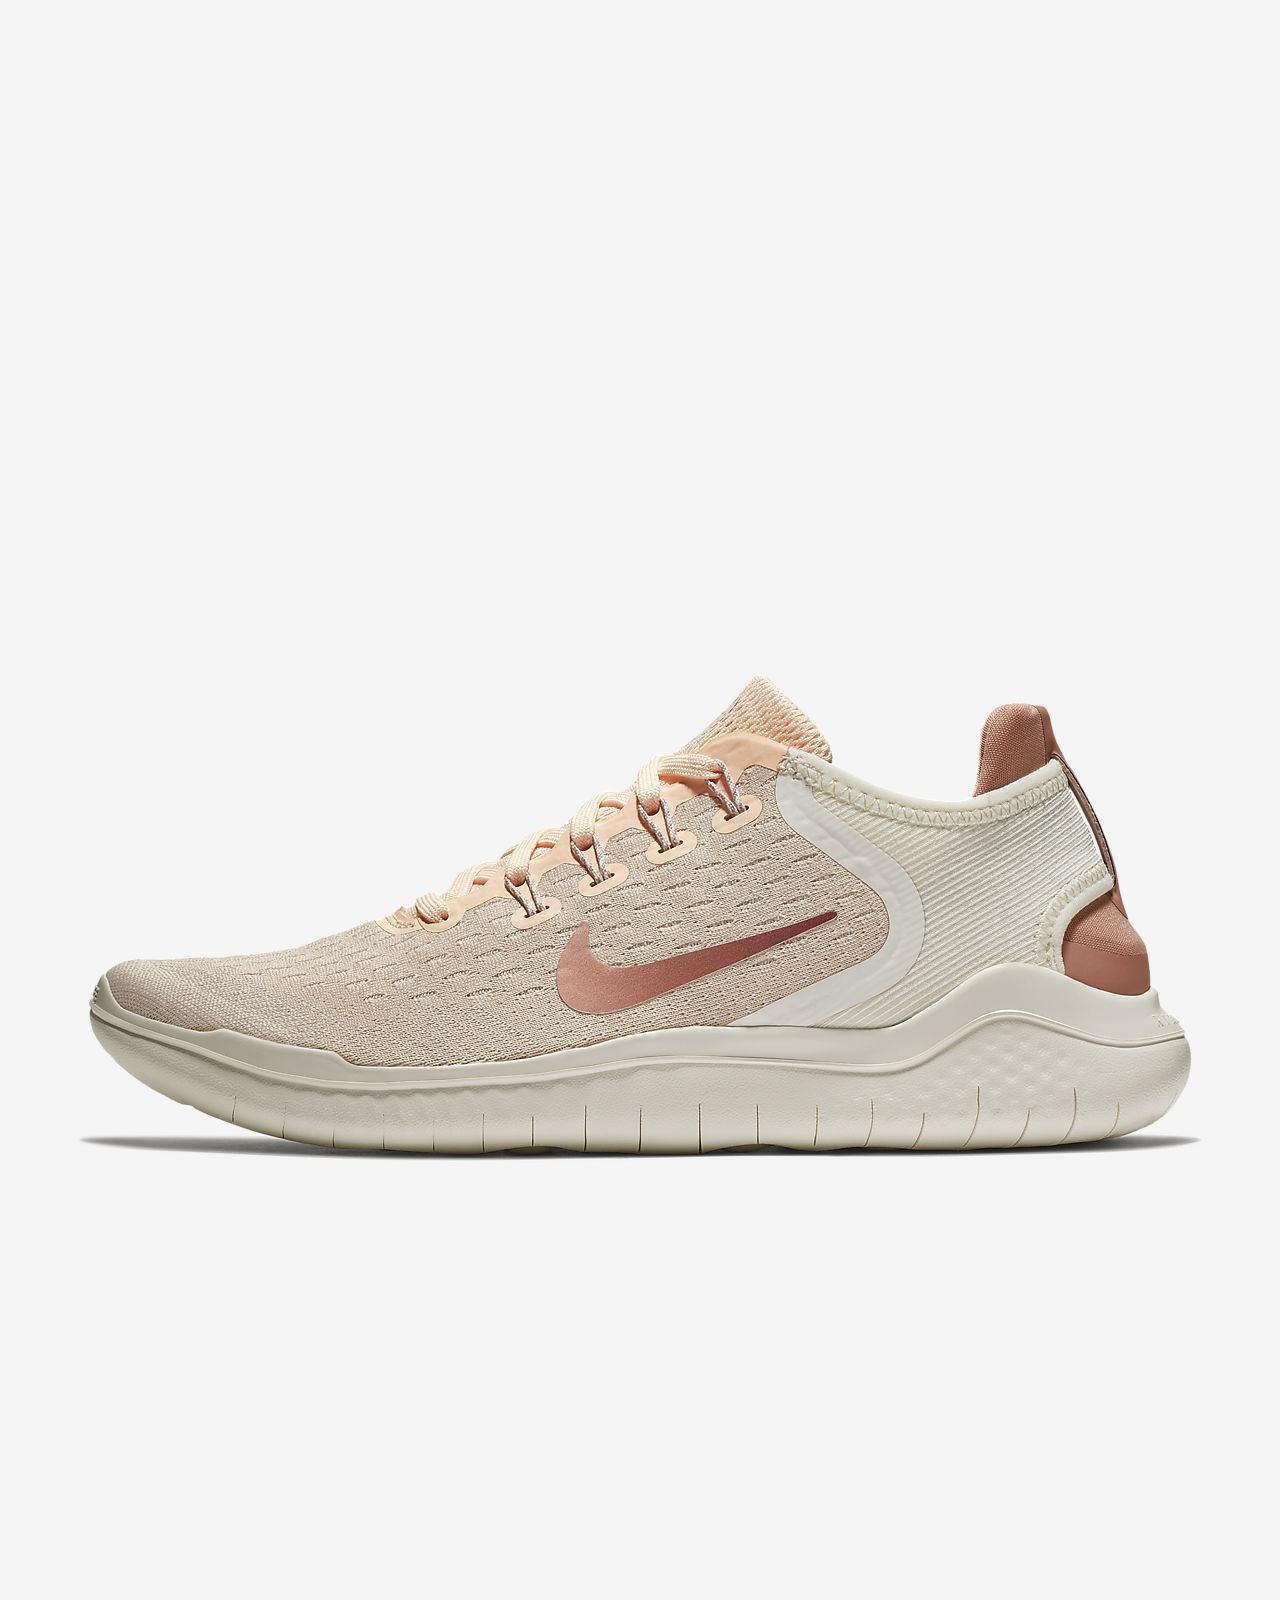 Nike Running Womens Shoes Sale